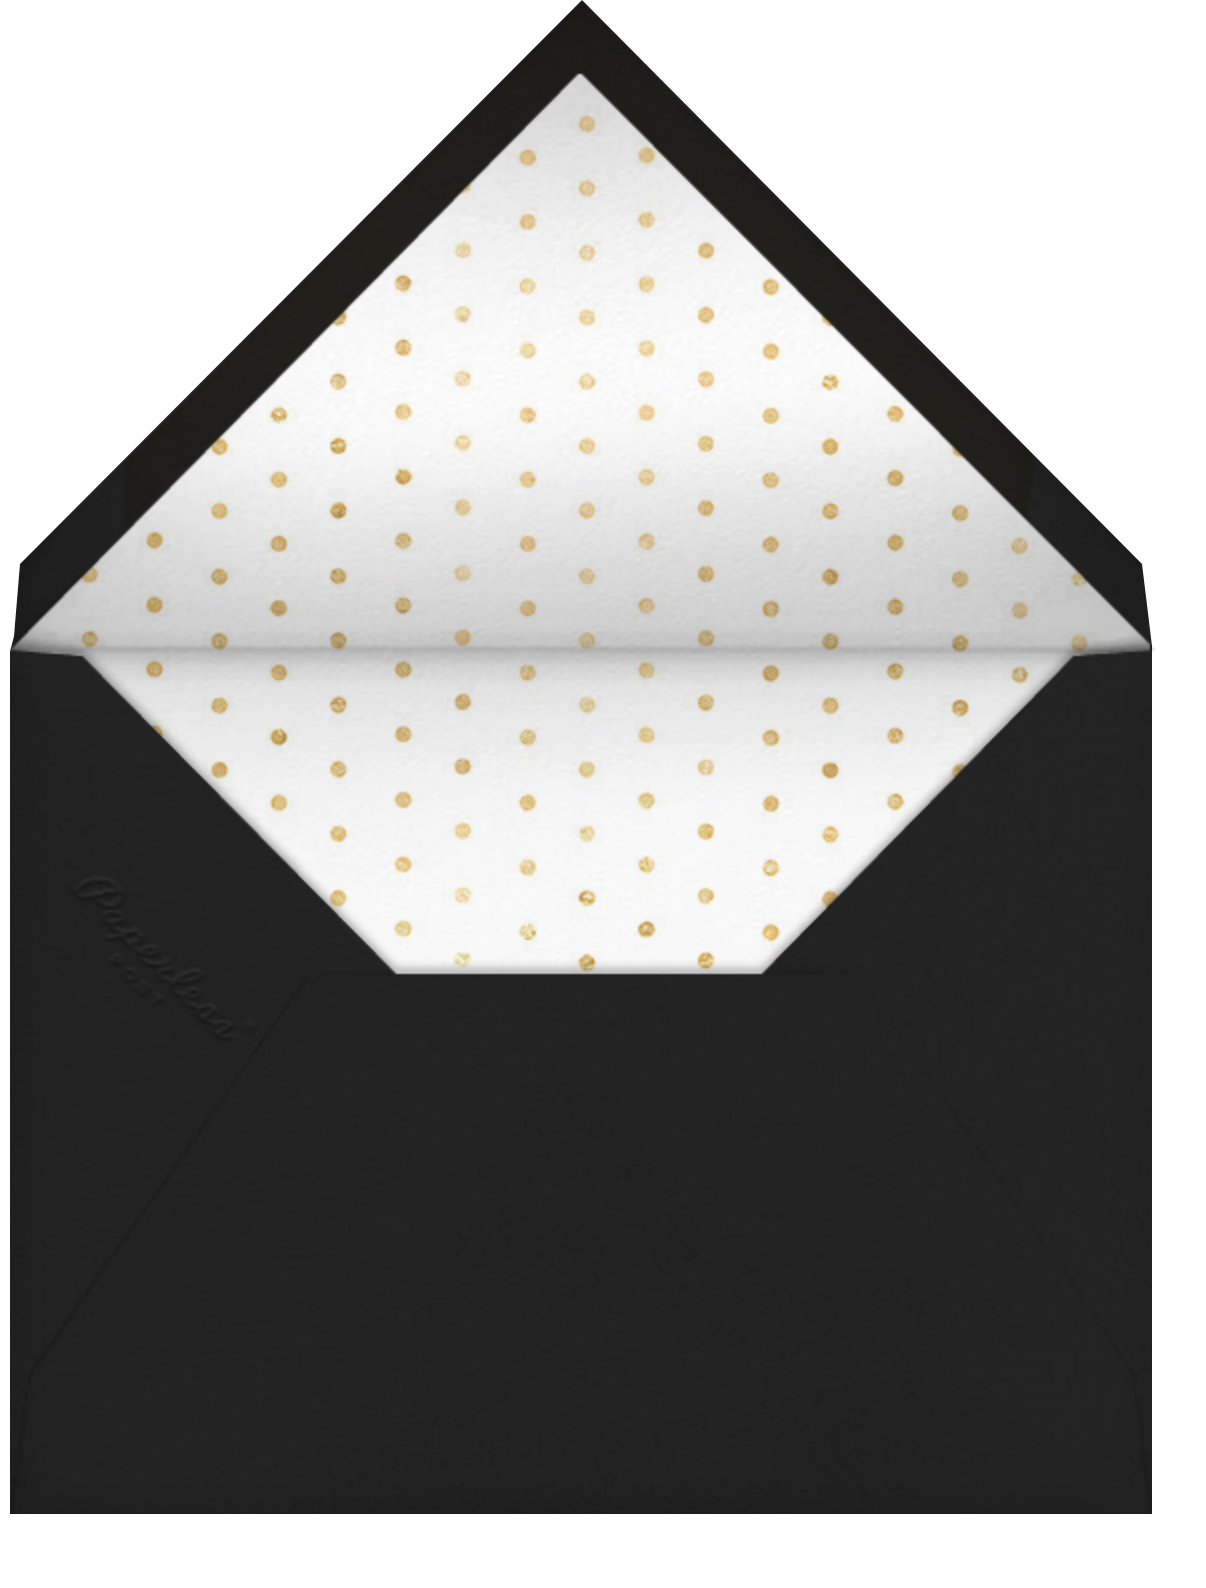 Tossed Cocktails - kate spade new york - New Year's Eve - envelope back